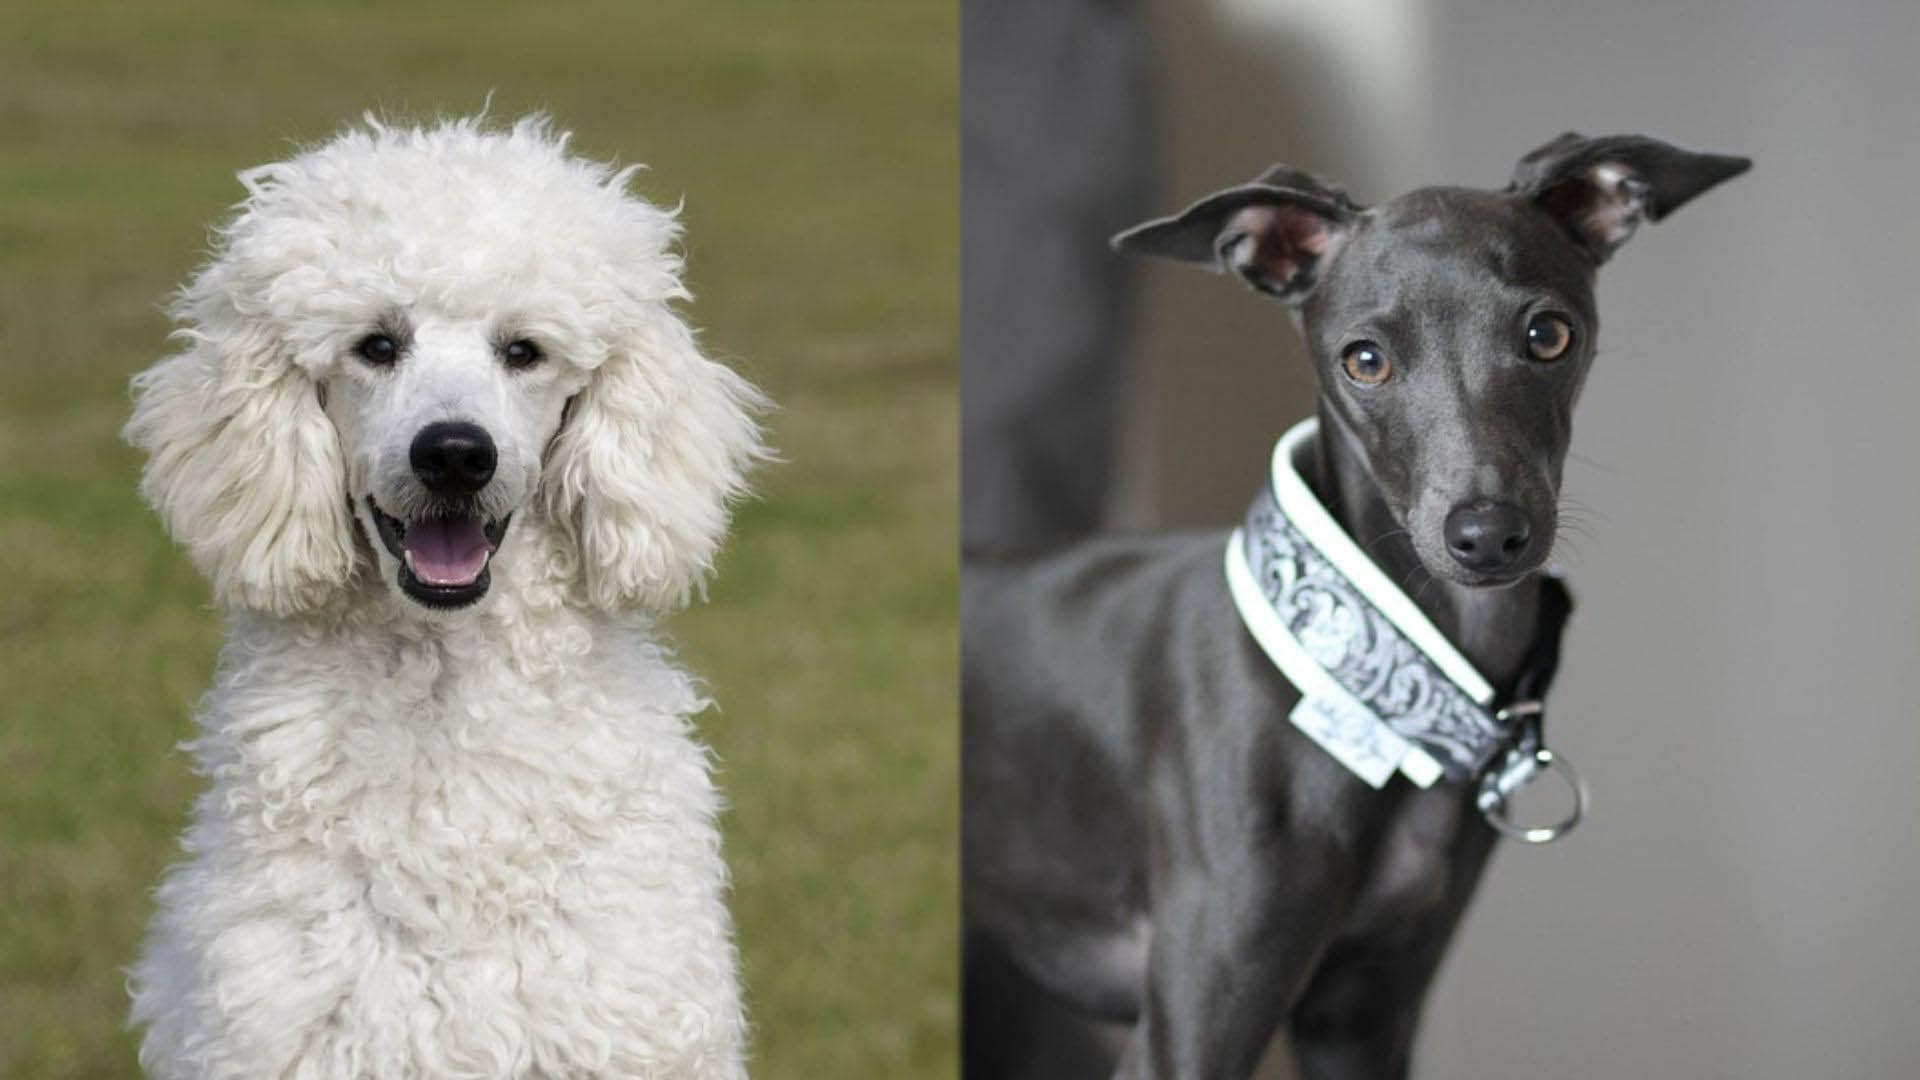 Pootalian - Poodle and Italian Greyhound Mix